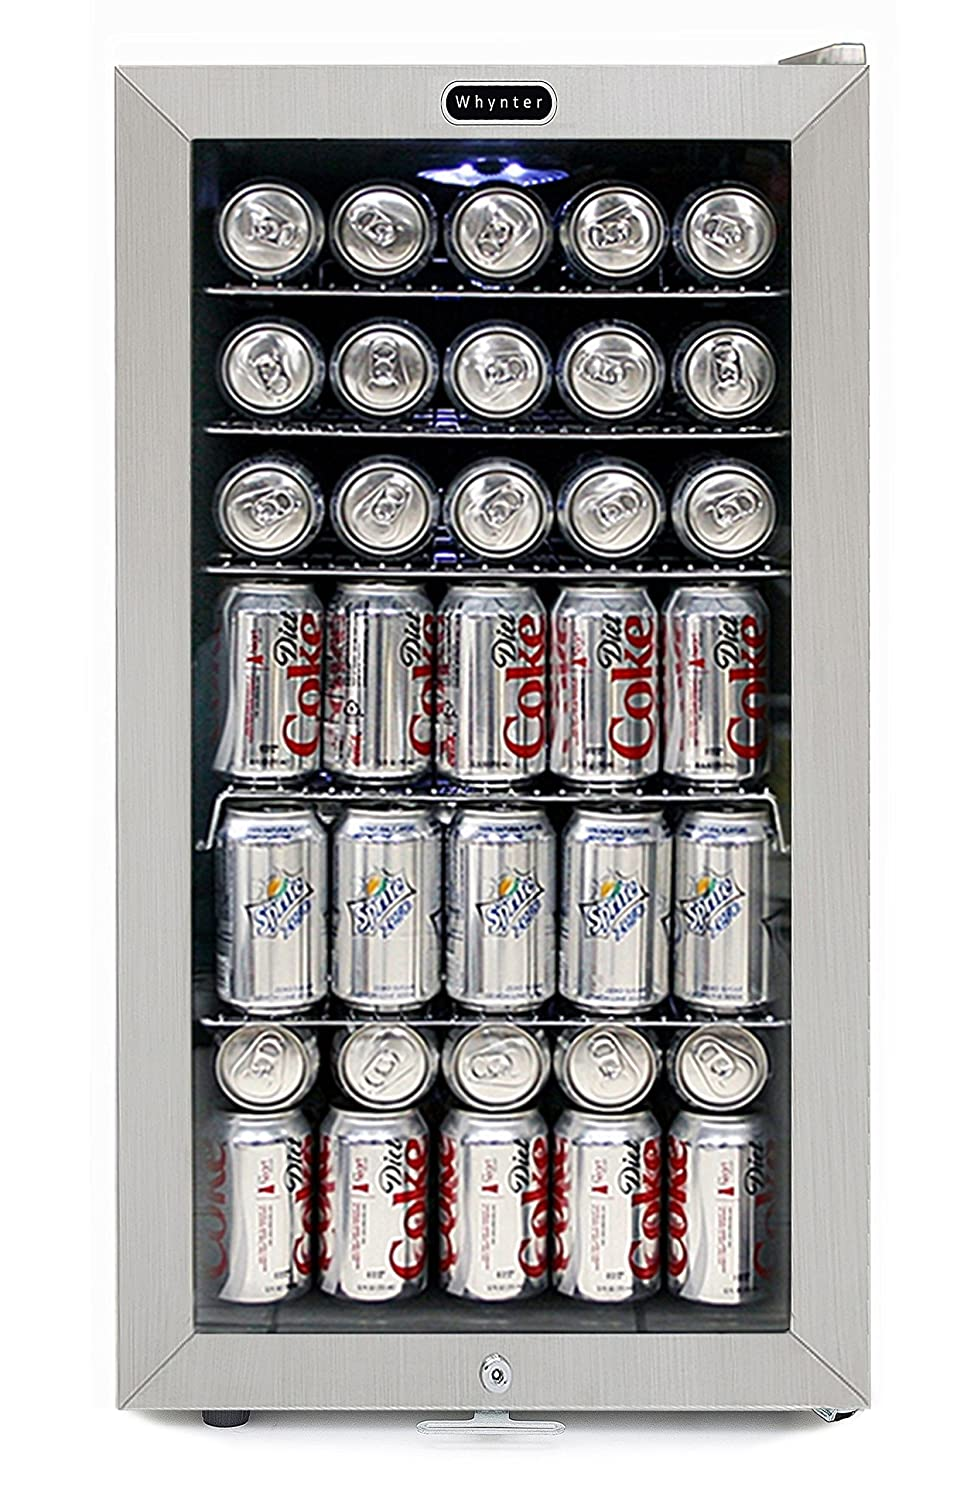 Whynter BR-128WS Lock, 120 Can Capacity, Stainless Steel Beverage Refrigerator White